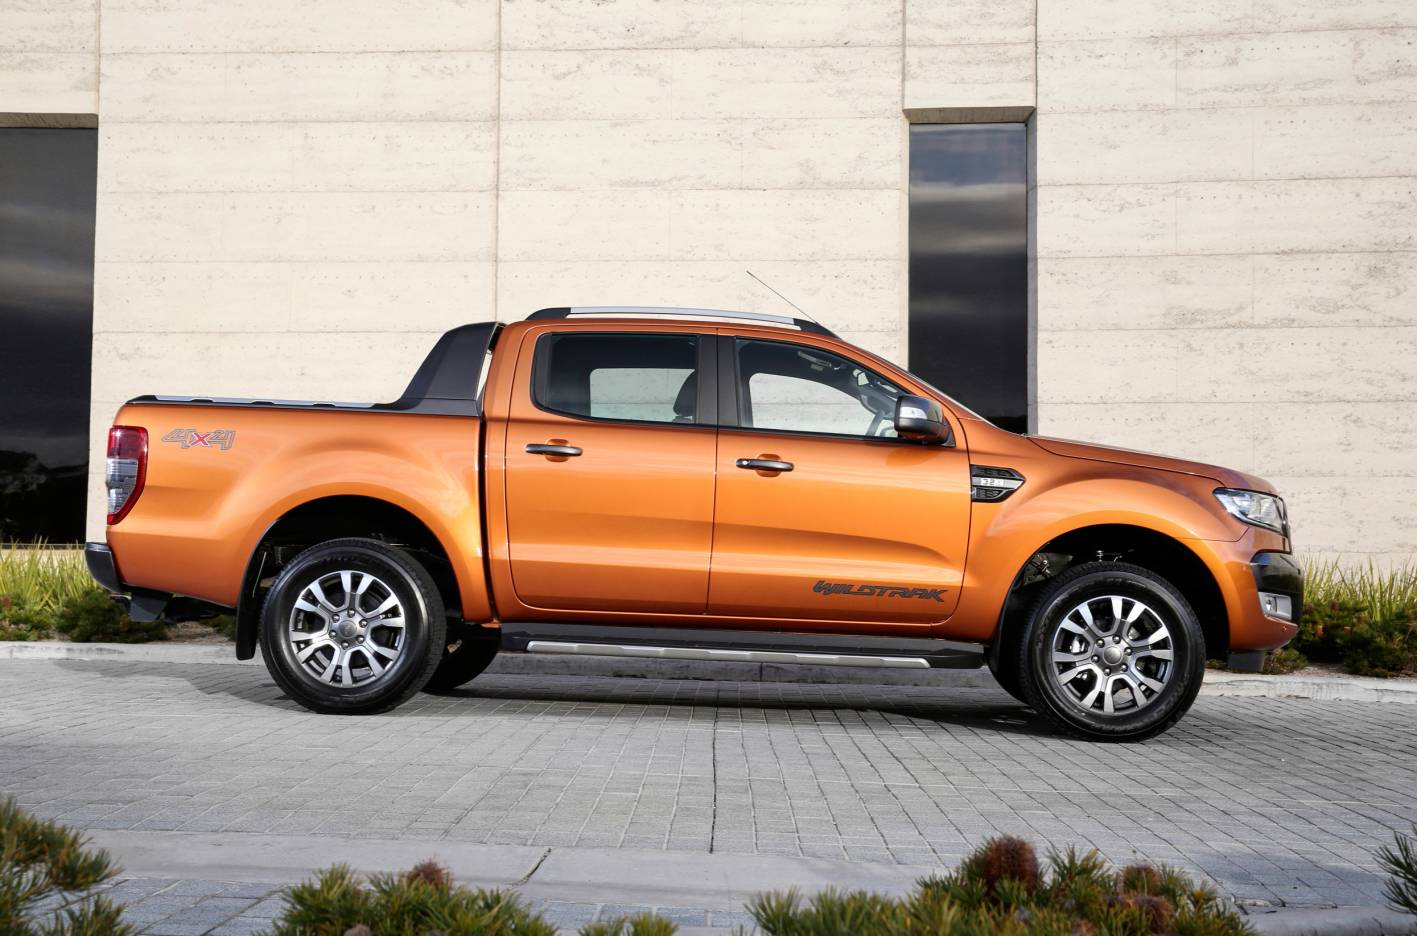 2017 ford ranger wildtrak review top10cars for Ford ranger wildtrak interior 2017